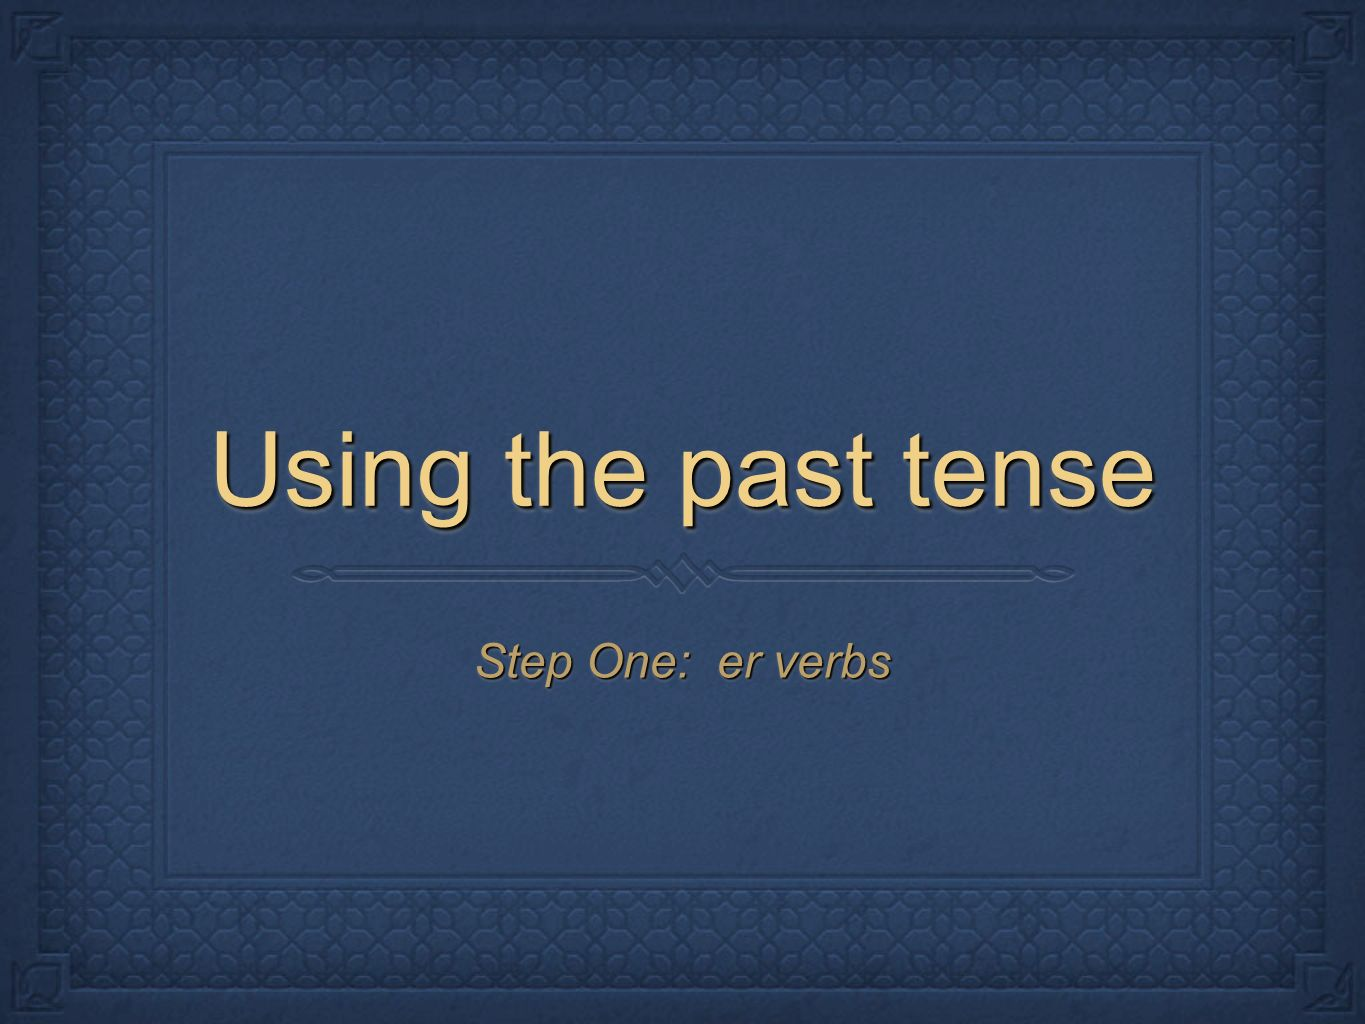 Using the past tense Step One: er verbs